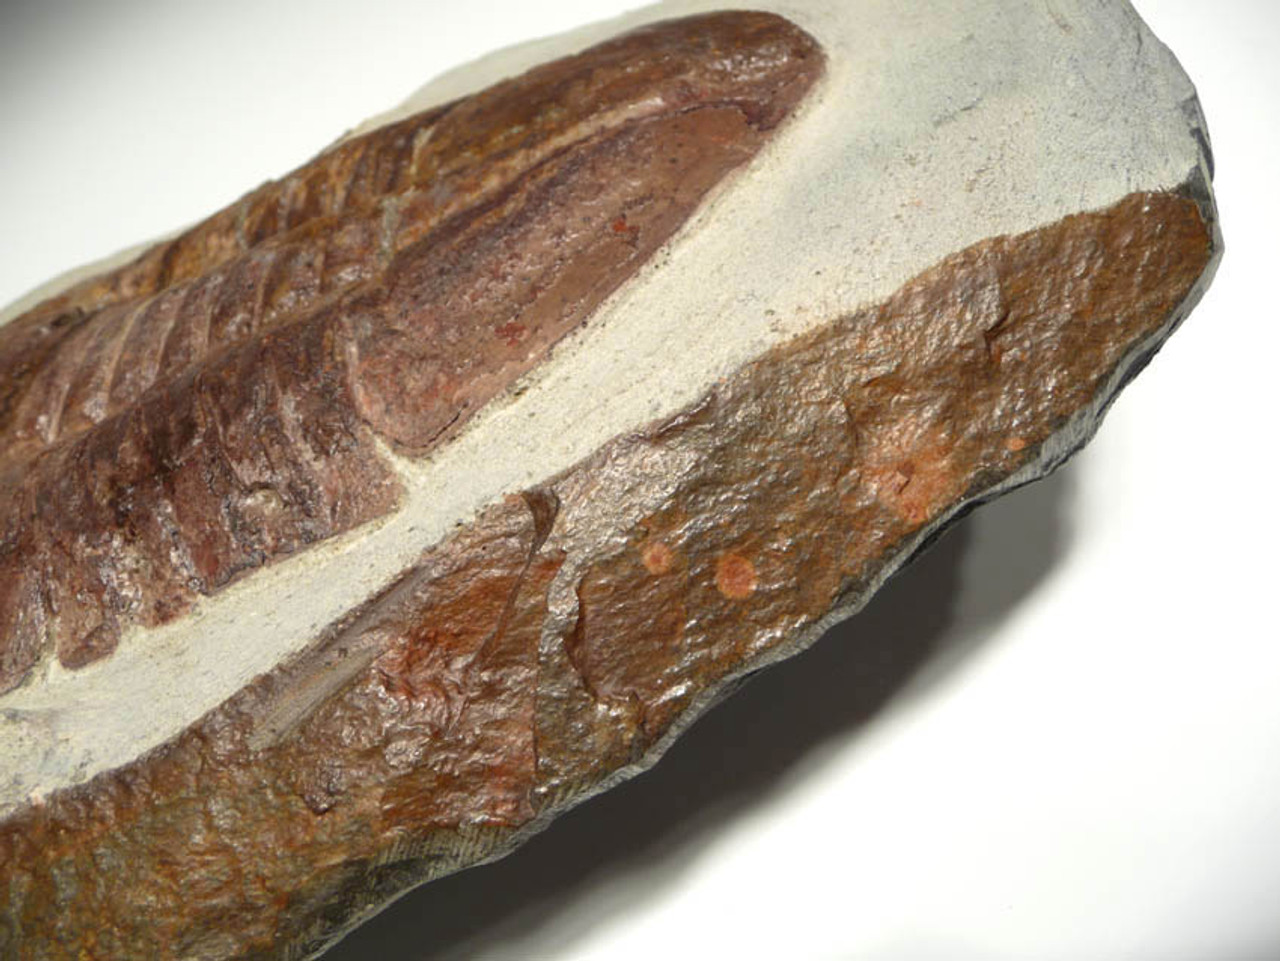 ONE EDGE OF ROCK PLATE SHOWS ORIGINAL NATURAL EXPOSED ROCK FACE OF CLIFF.  THE COLOR OF THIS NATURAL FACE MATCHES THE TRILOBITE.